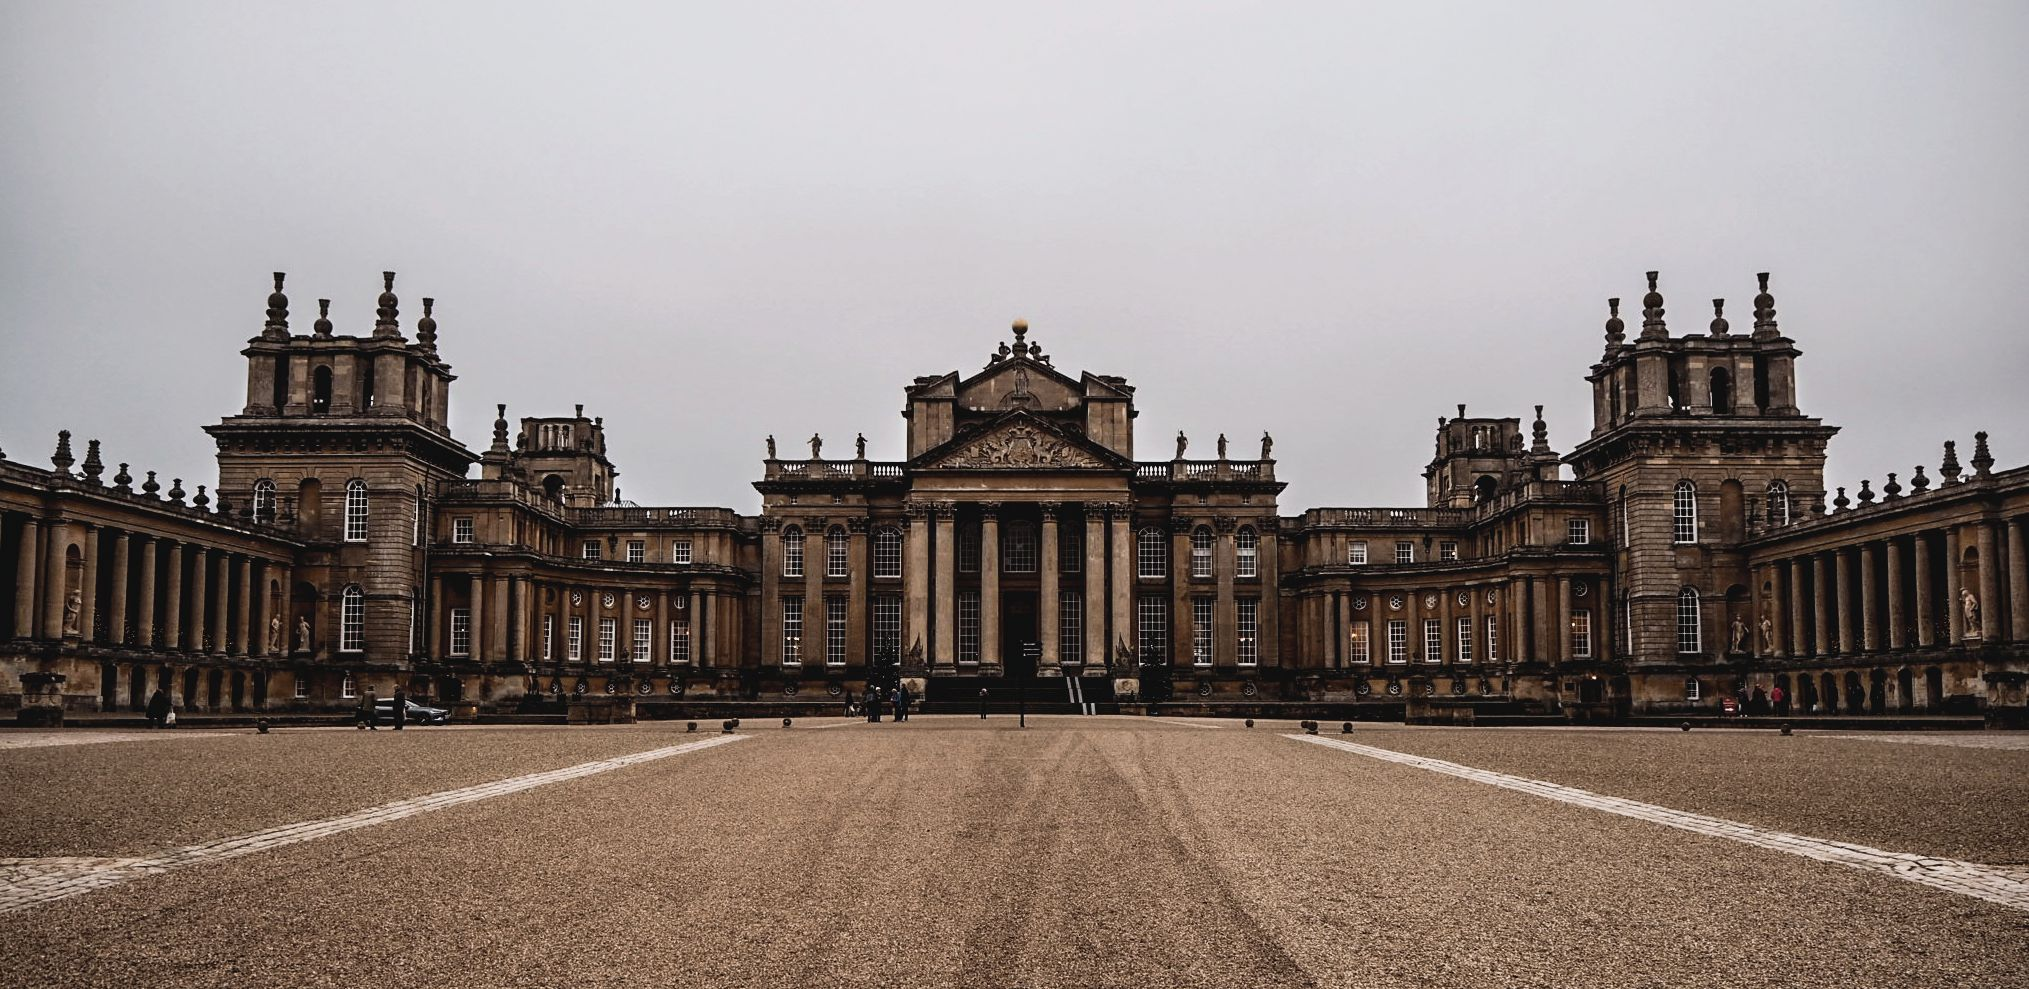 'A Giant Among Buildings' – Blenheim Palace